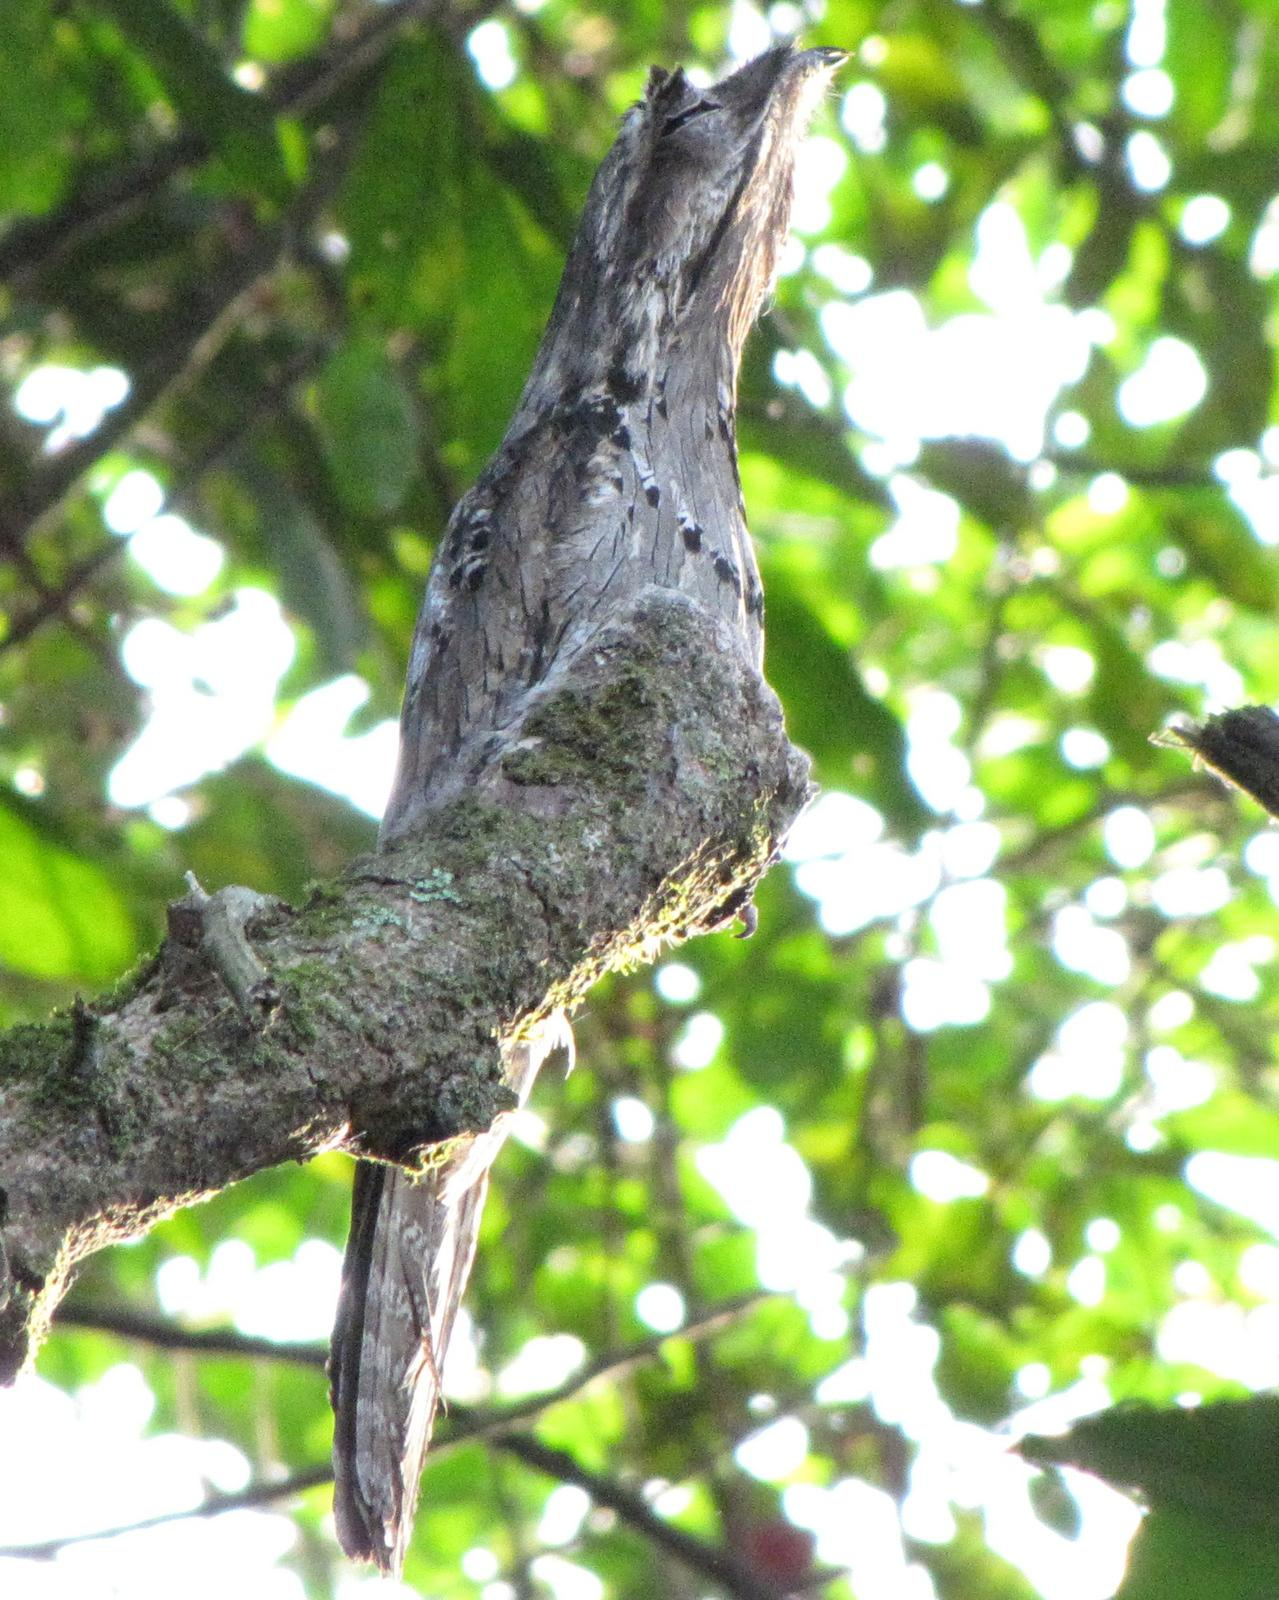 Common Potoo Photo by Kent Fiala